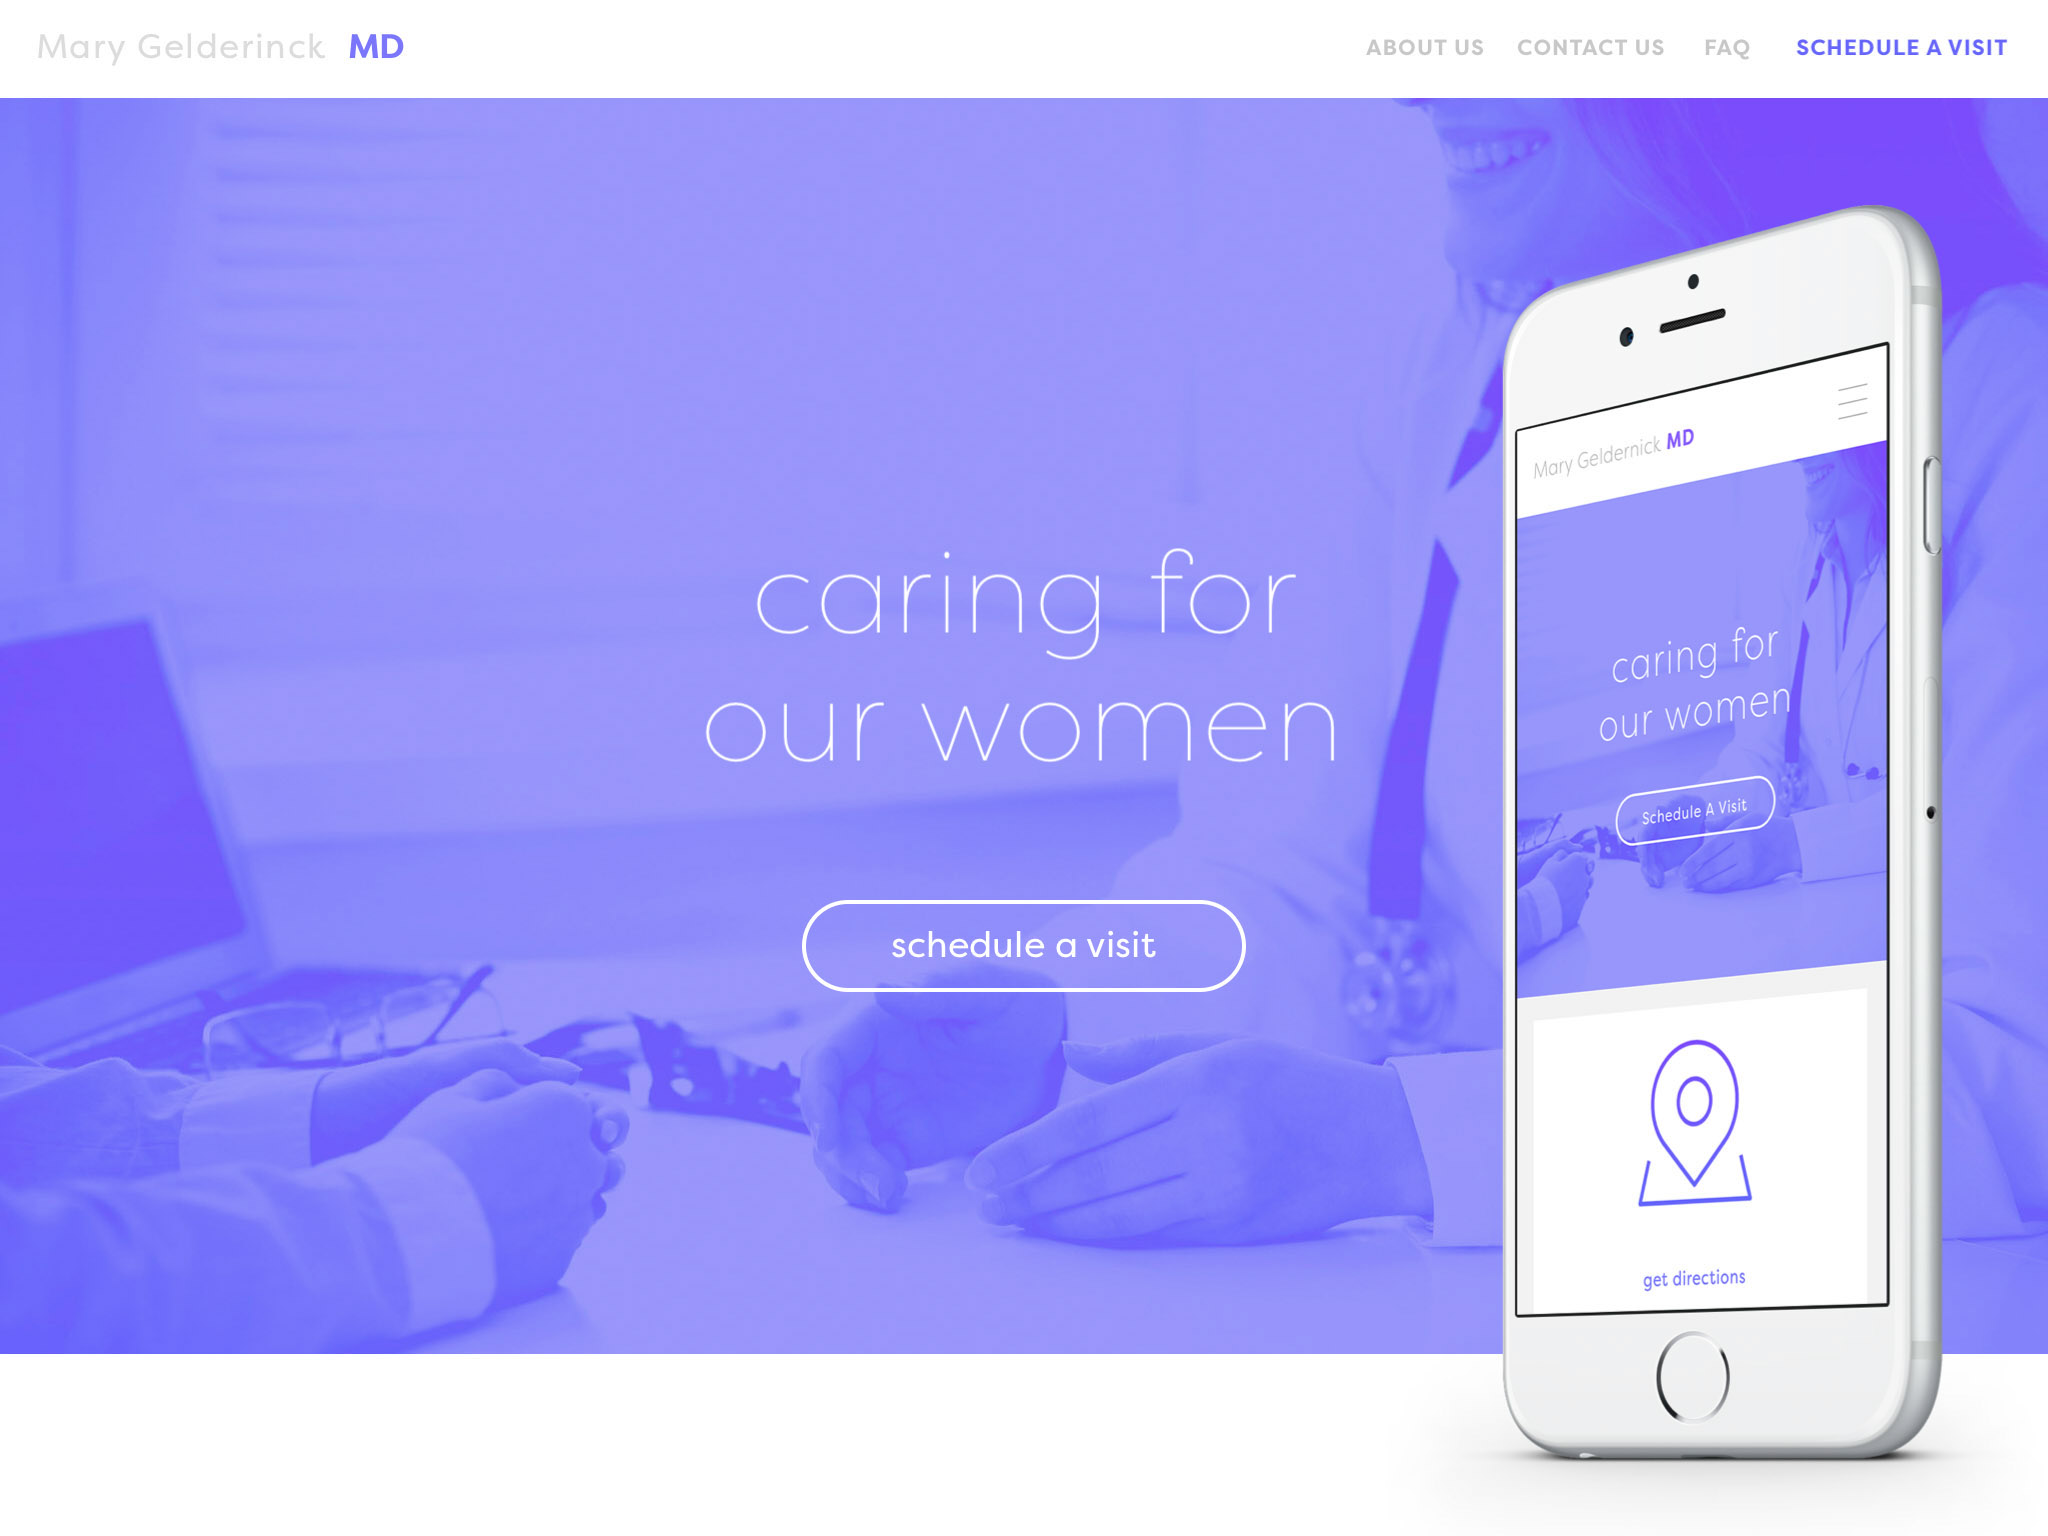 This image shows above the fold on both desktop and mobile. The new design features predominantly purple-blue gradients blended with photography and type.